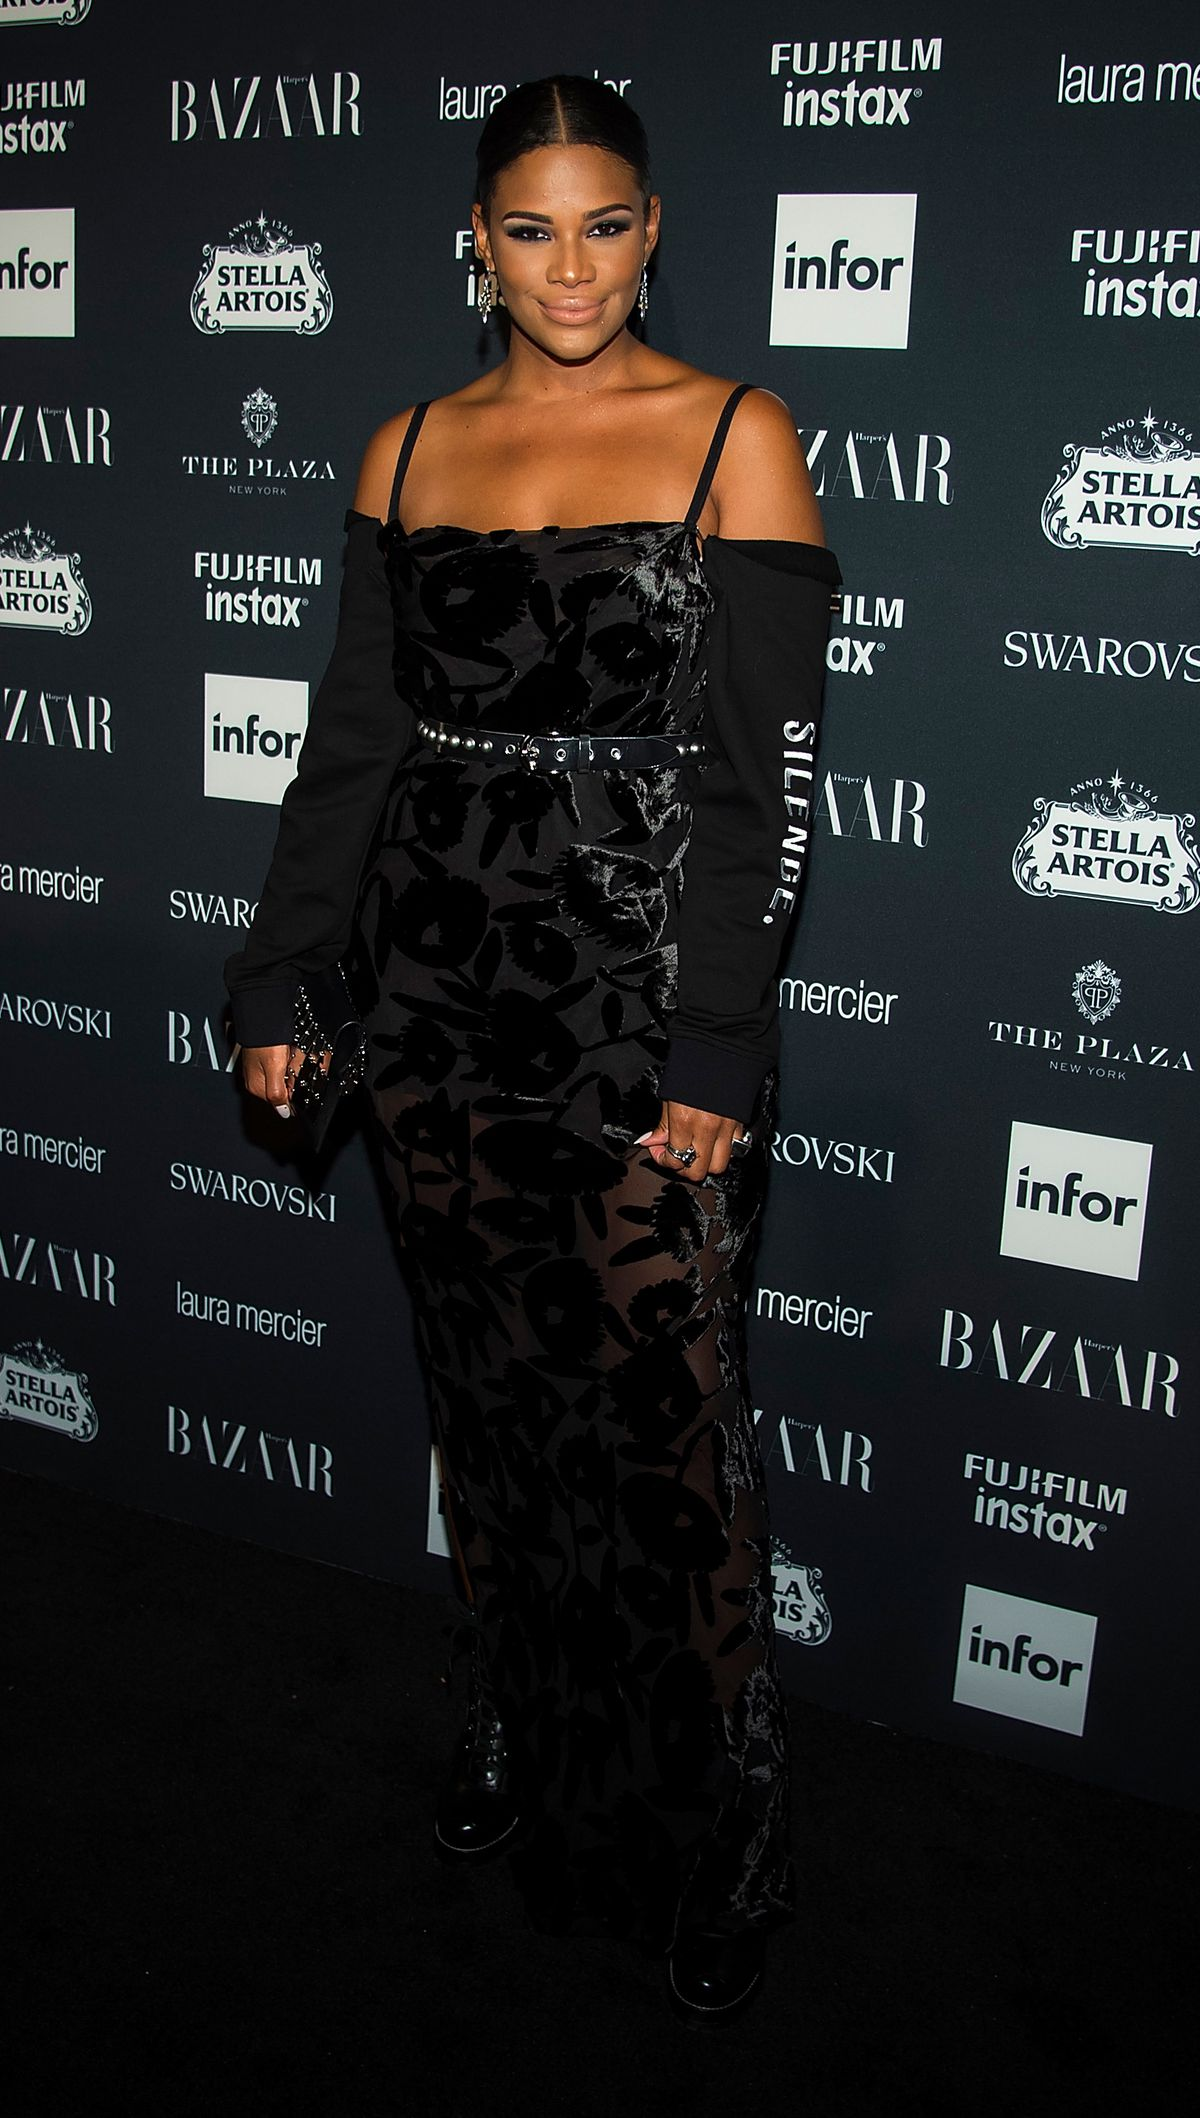 Kamie Crawford attends 2017 Harper's Bazaar Icons at The Plaza Hotel on September 8, 2017 in New York City.